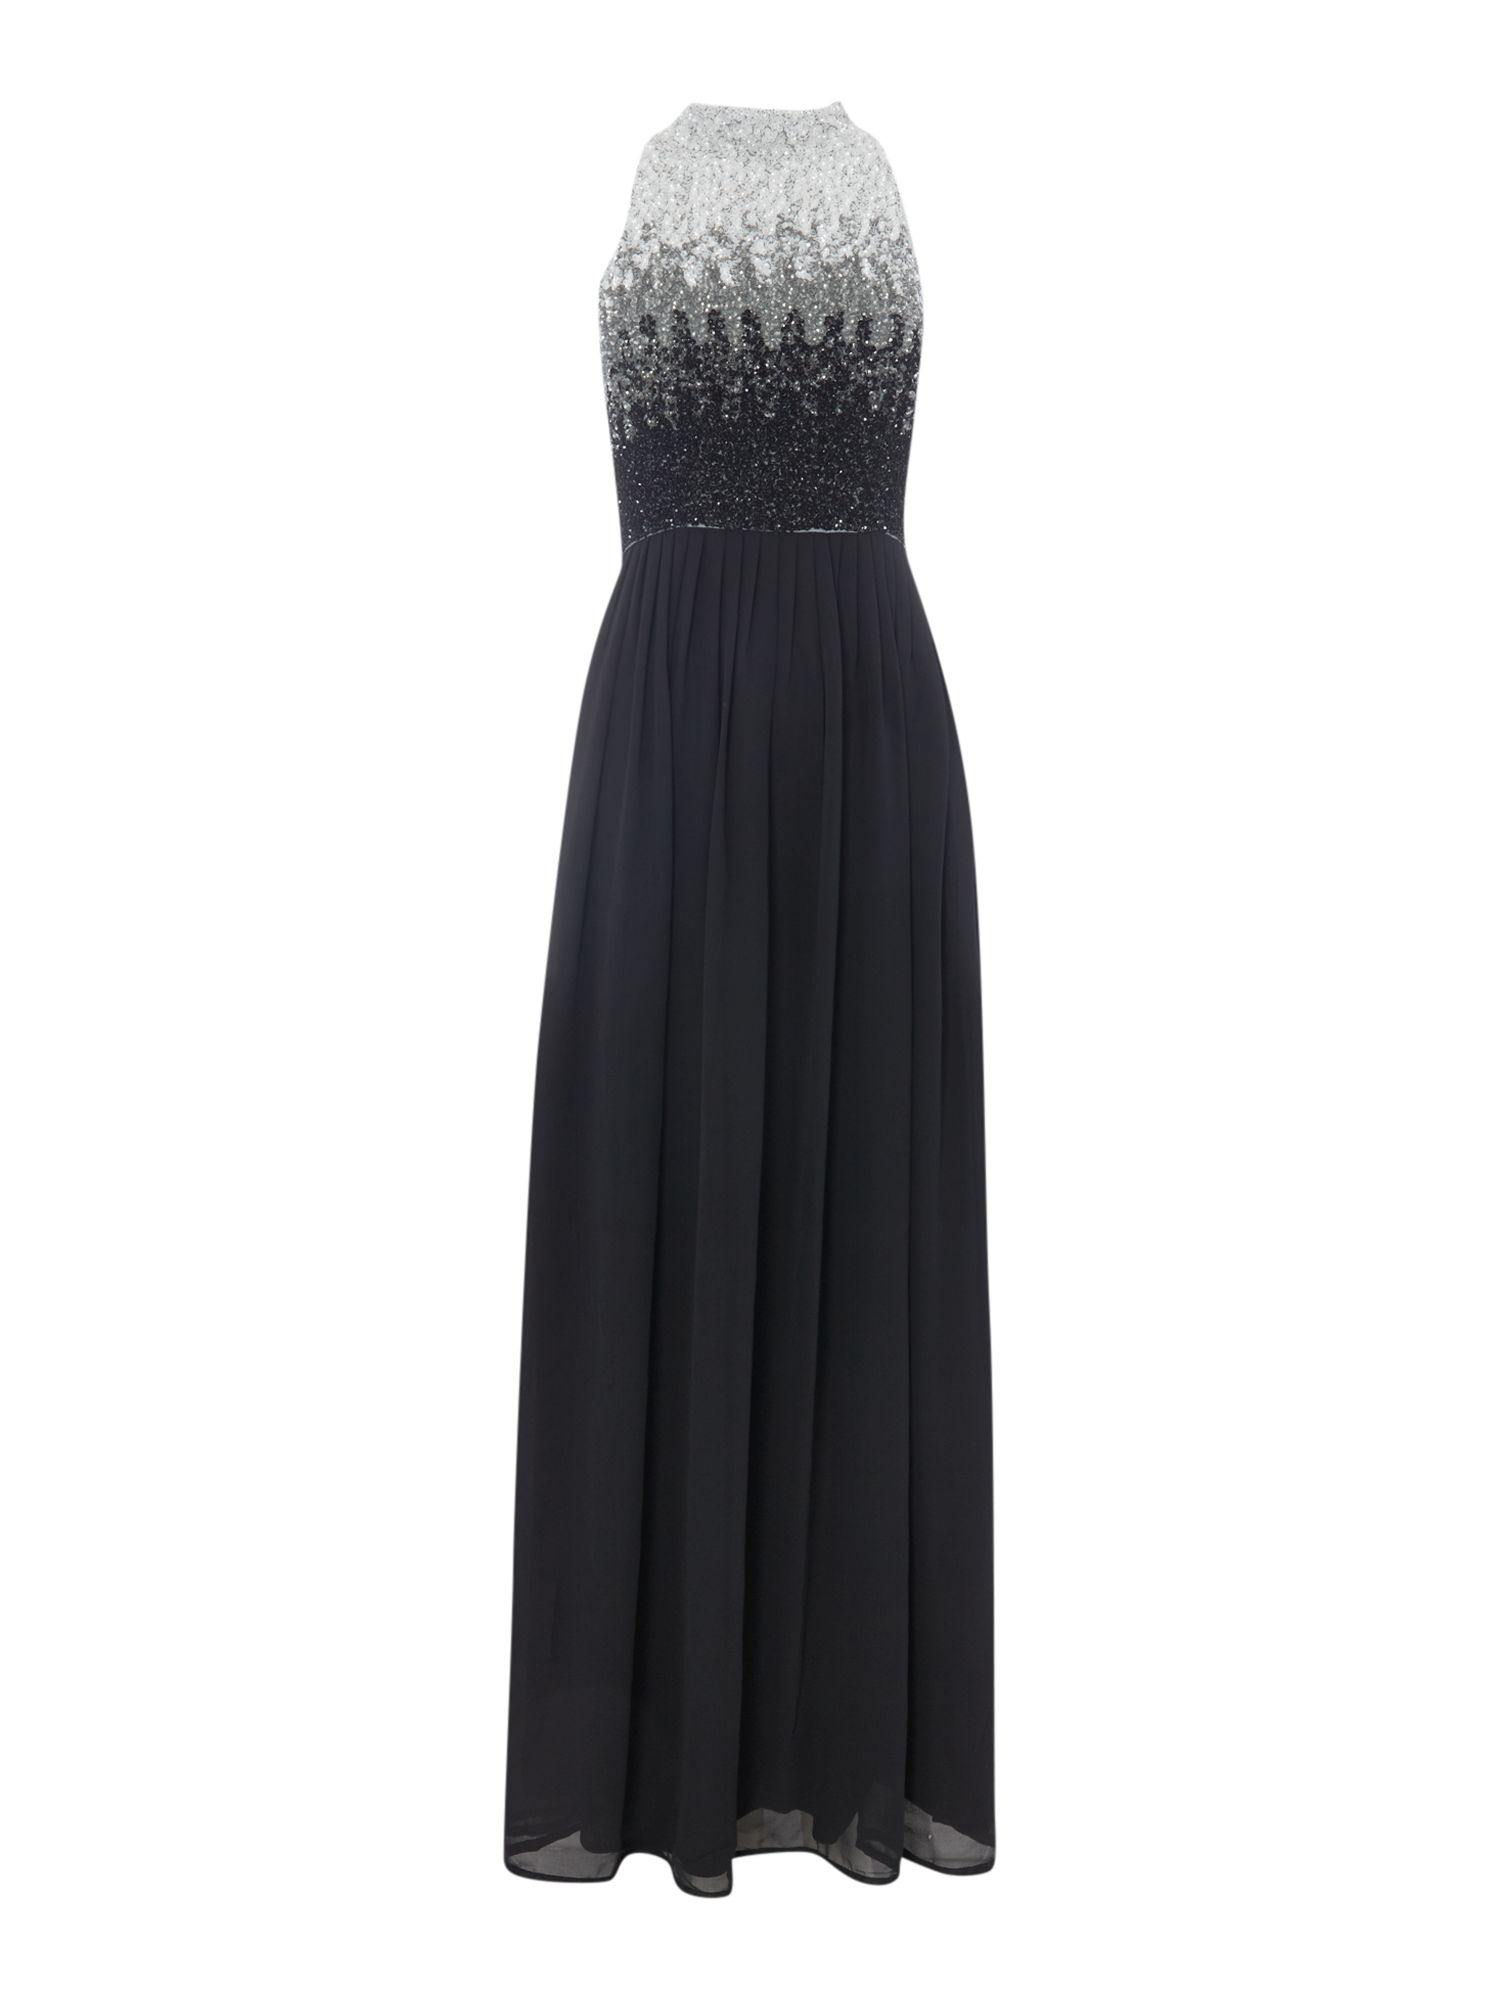 Lace and Beads Lace and Beads High Neck Ombre Sequin Maxi Dress, Black & Grey